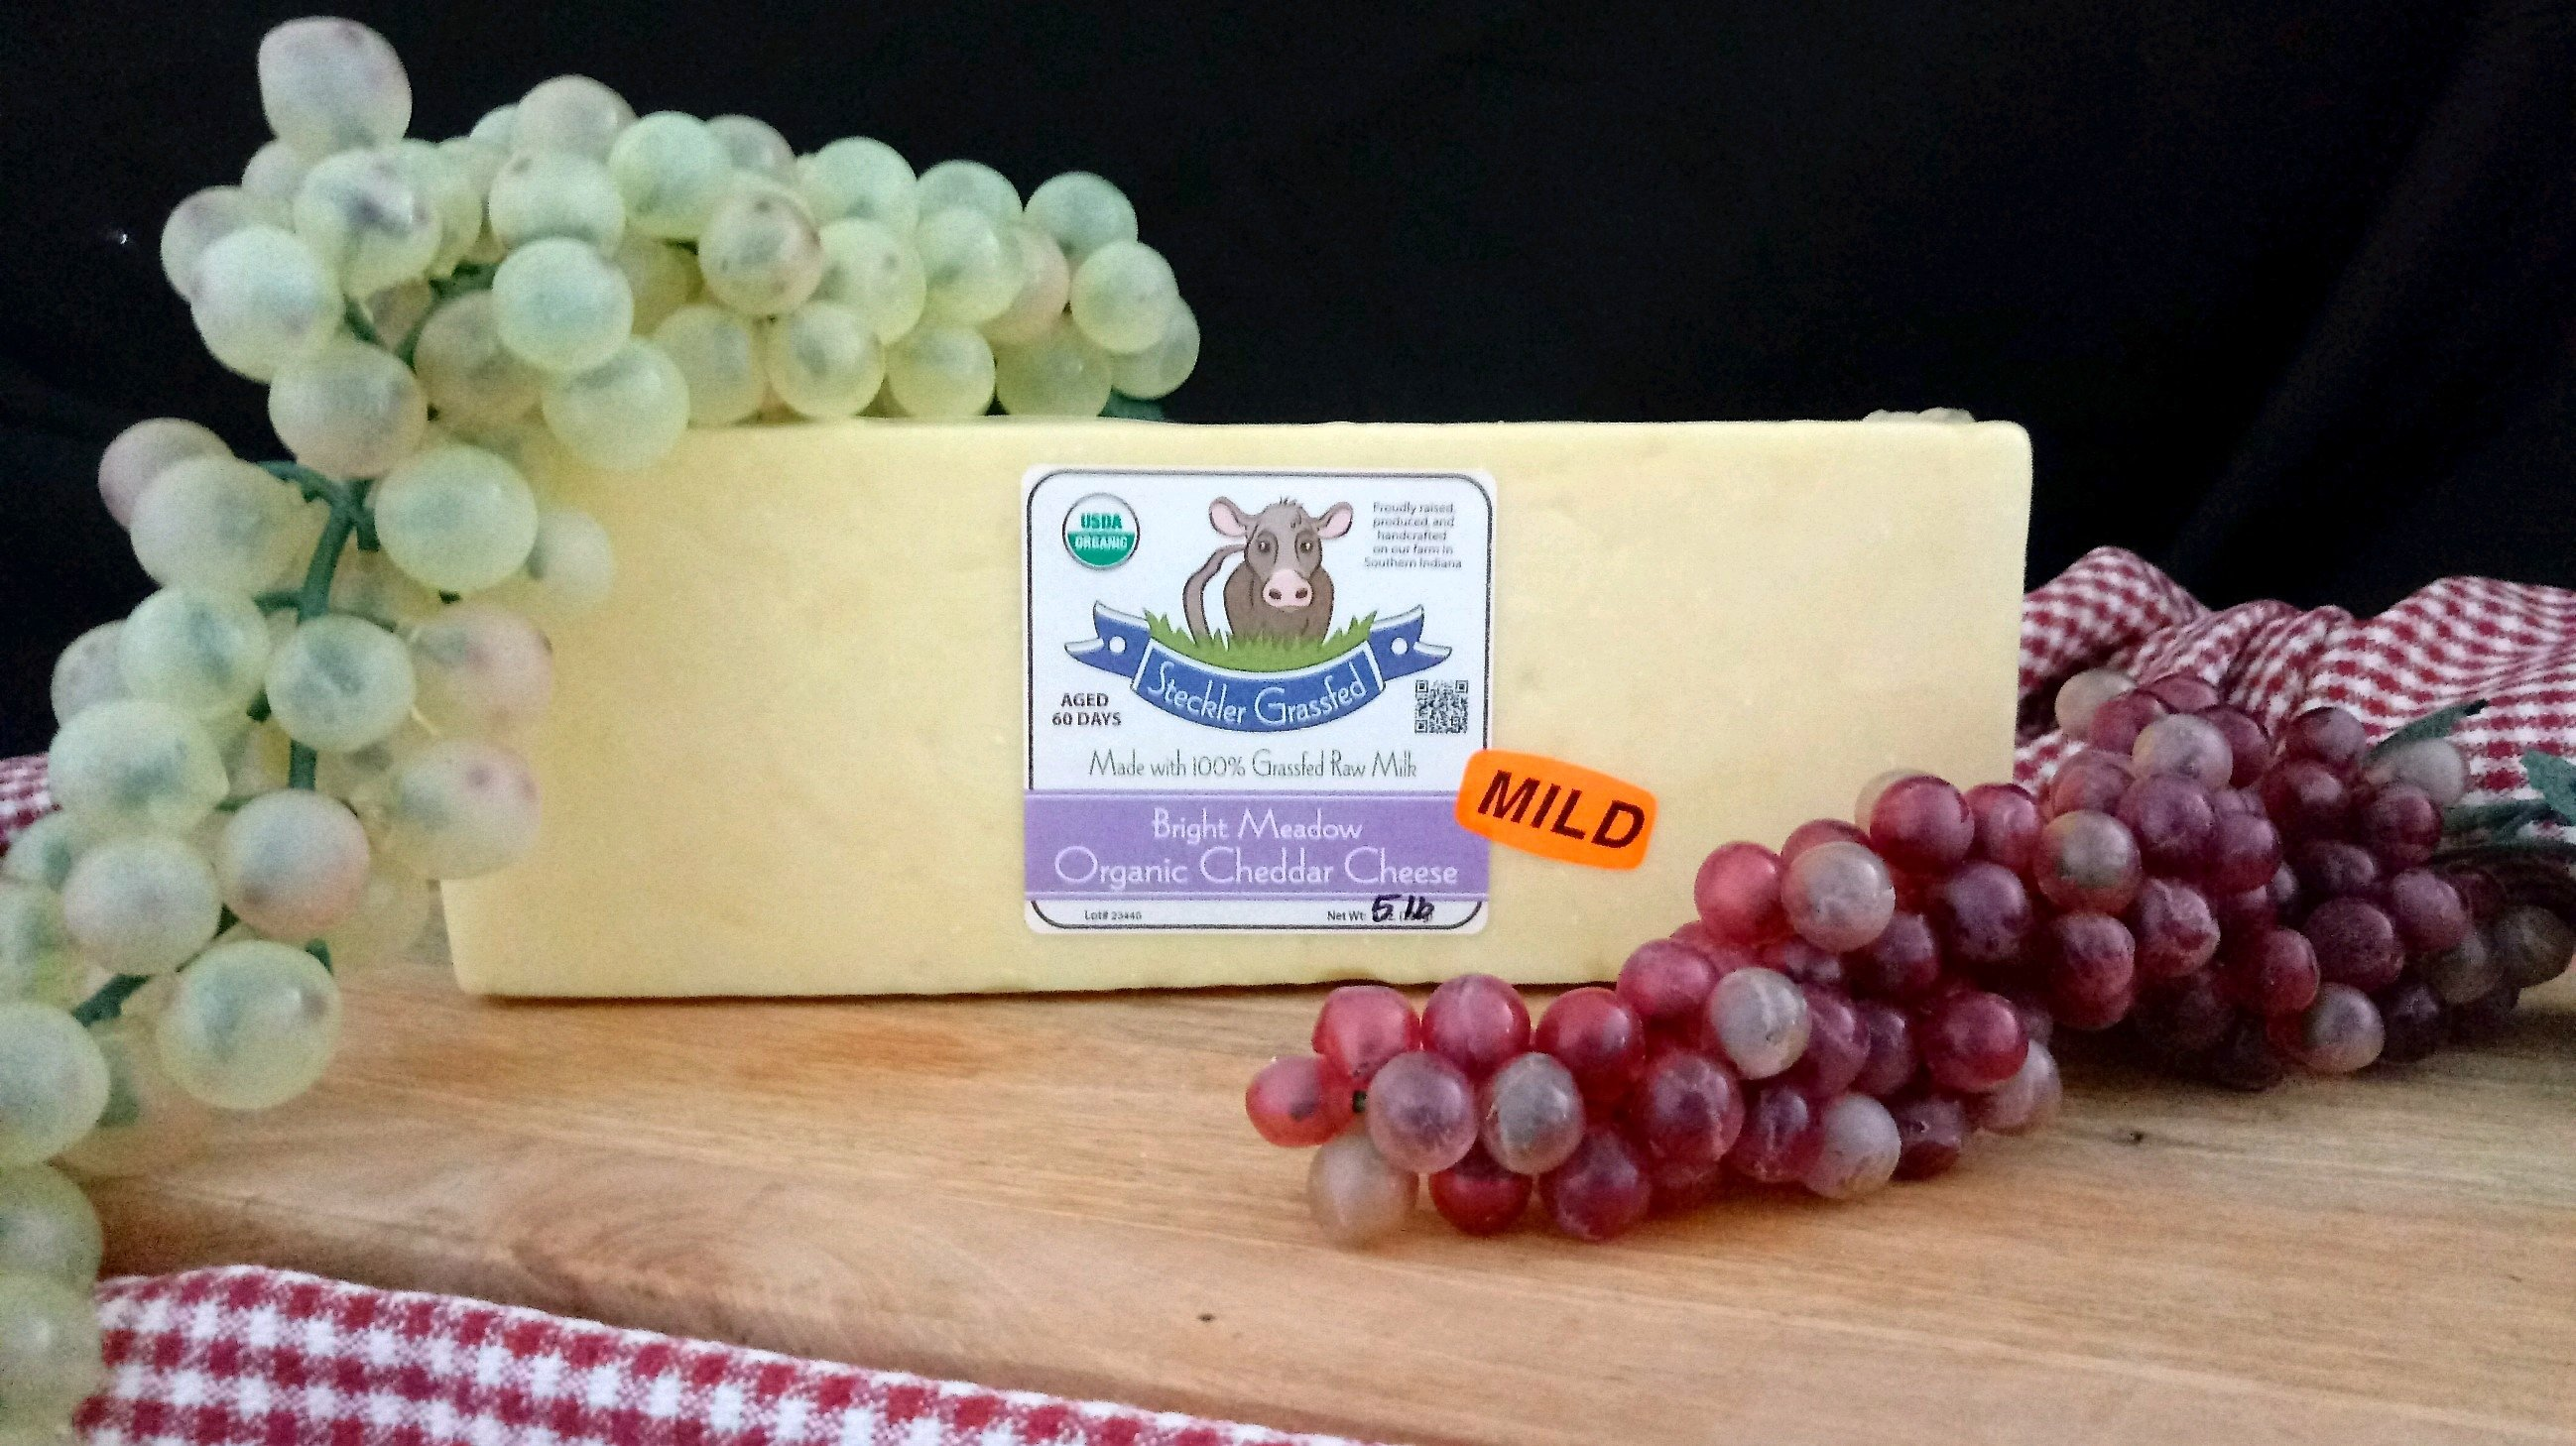 Bright Meadow Mild Cheddar Cheese